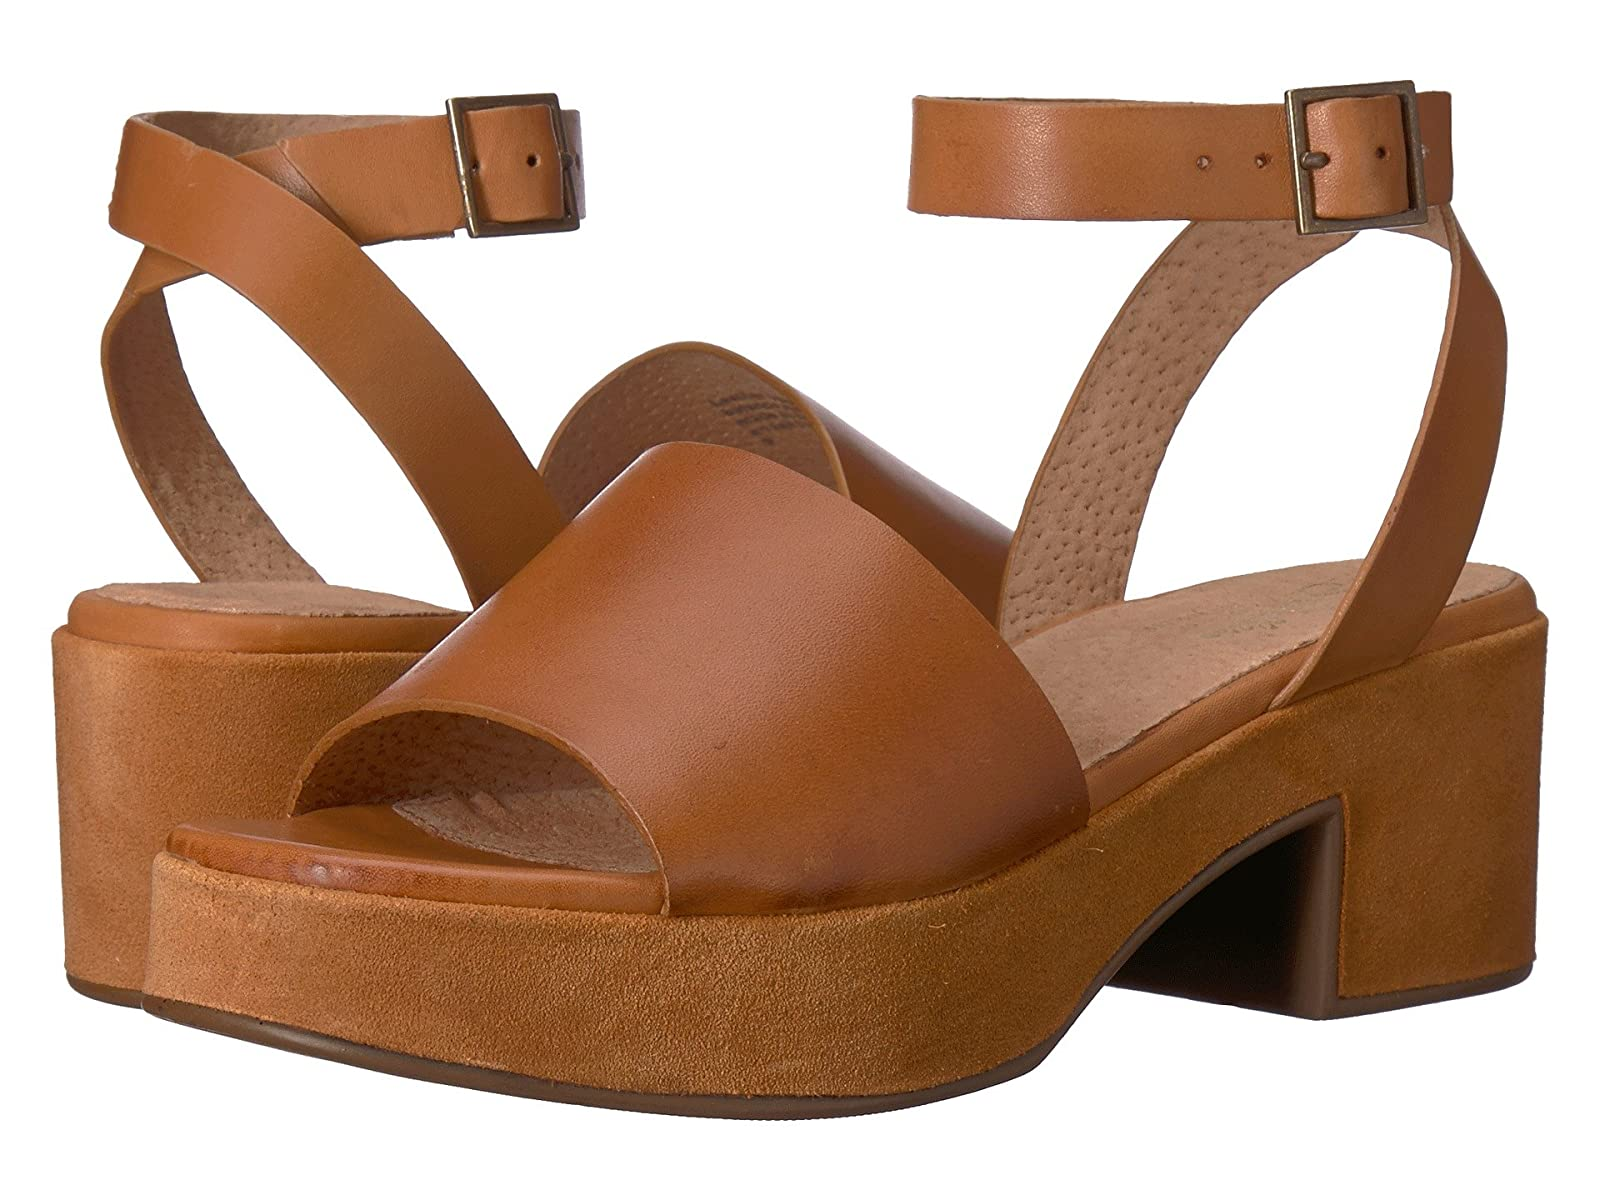 Seychelles Calming InfluenceAtmospheric grades have affordable shoes